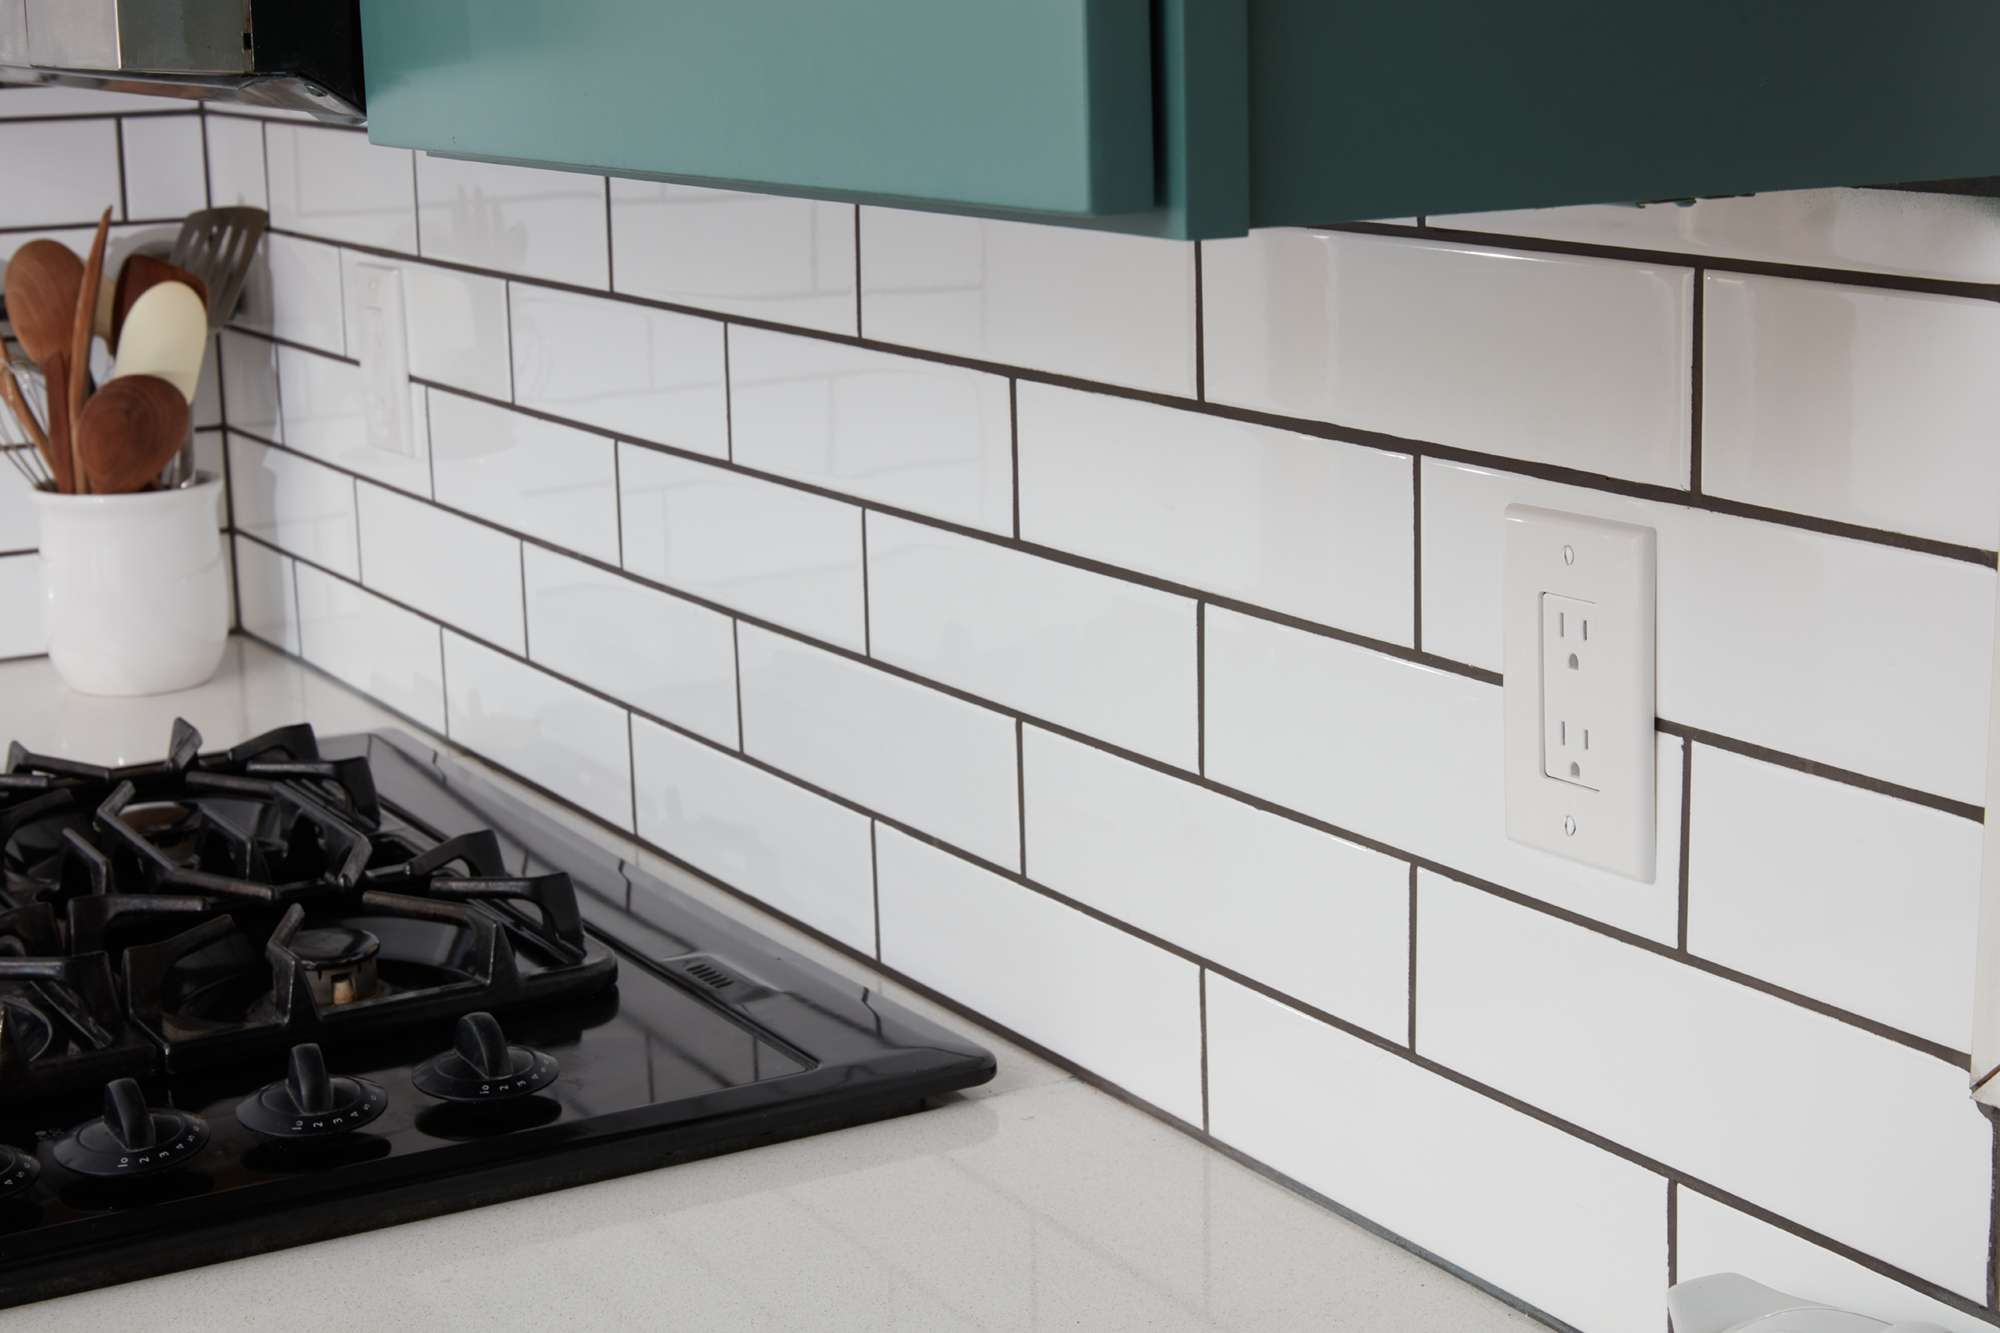 Kitchen electrical outlet on tiled wall next to stove